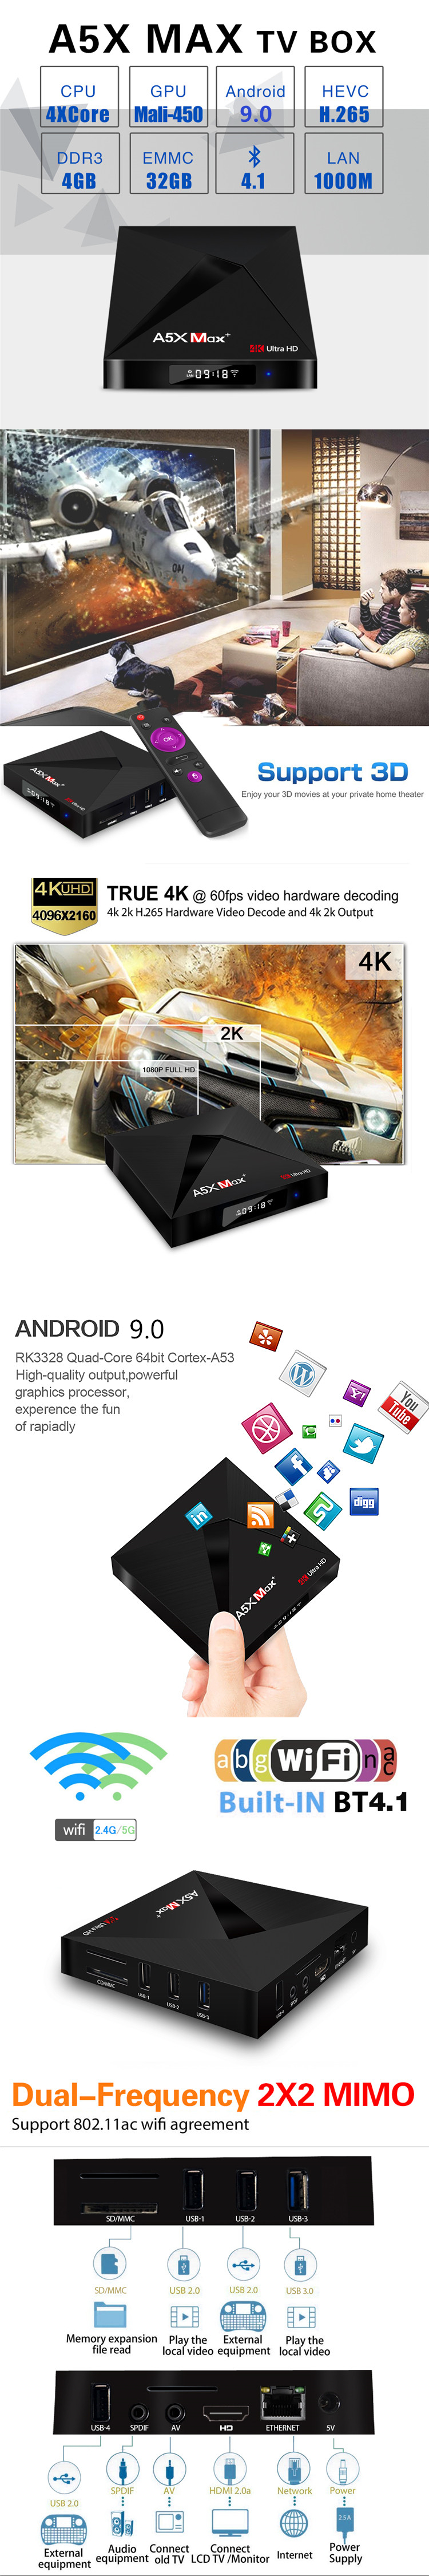 A5X MAX+ mashmallow 4G 32G 4k octa core tv box DVB-S2/T2/Cable/ISD BT 4.1 RK3328 android tv box with Android 9.0 keyboard